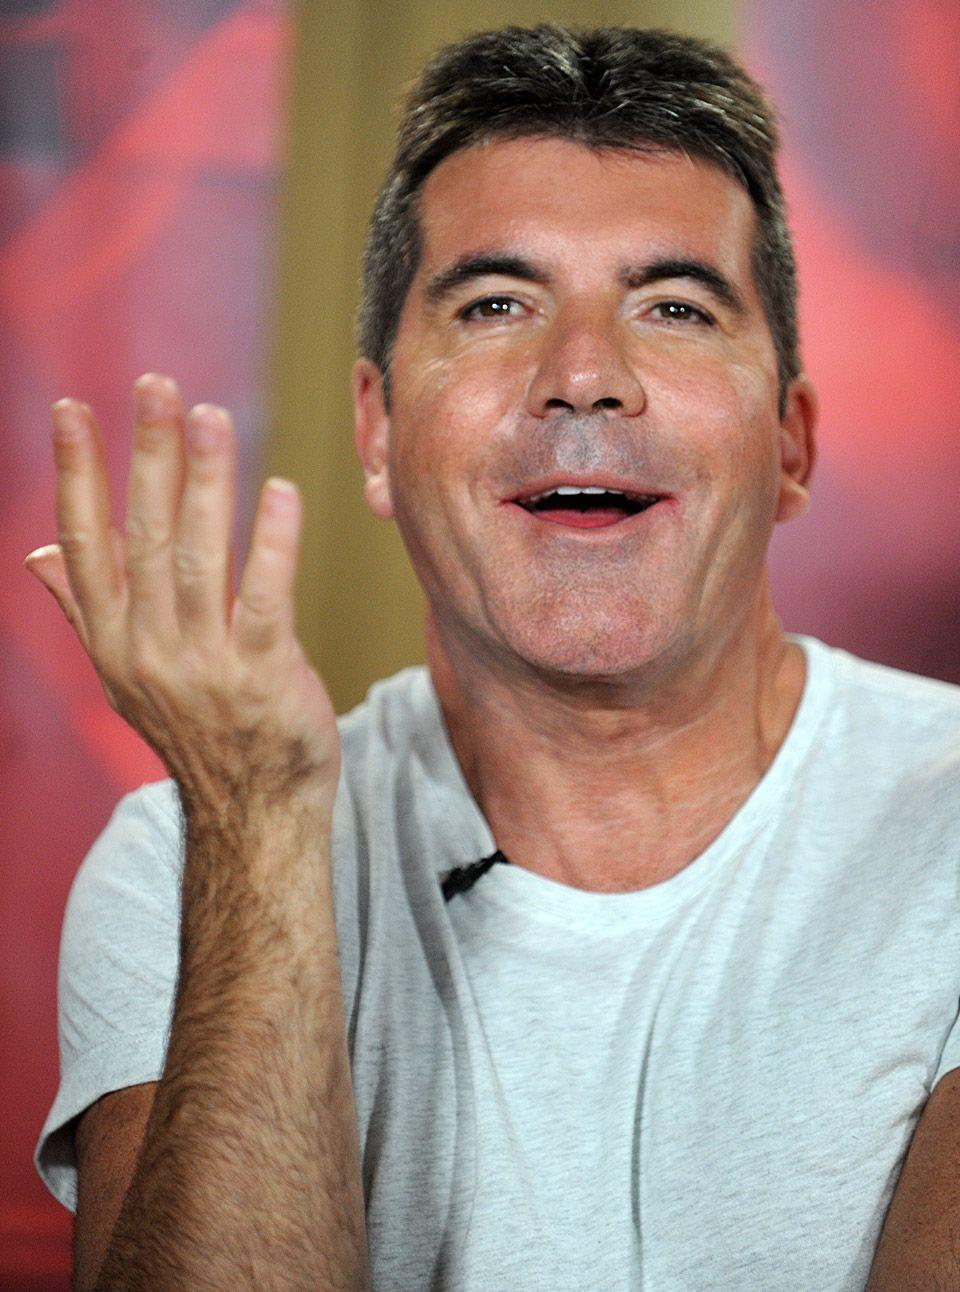 Computer Wallpapers, Desktop Backgrounds Simon Cowell, 308.09 KB